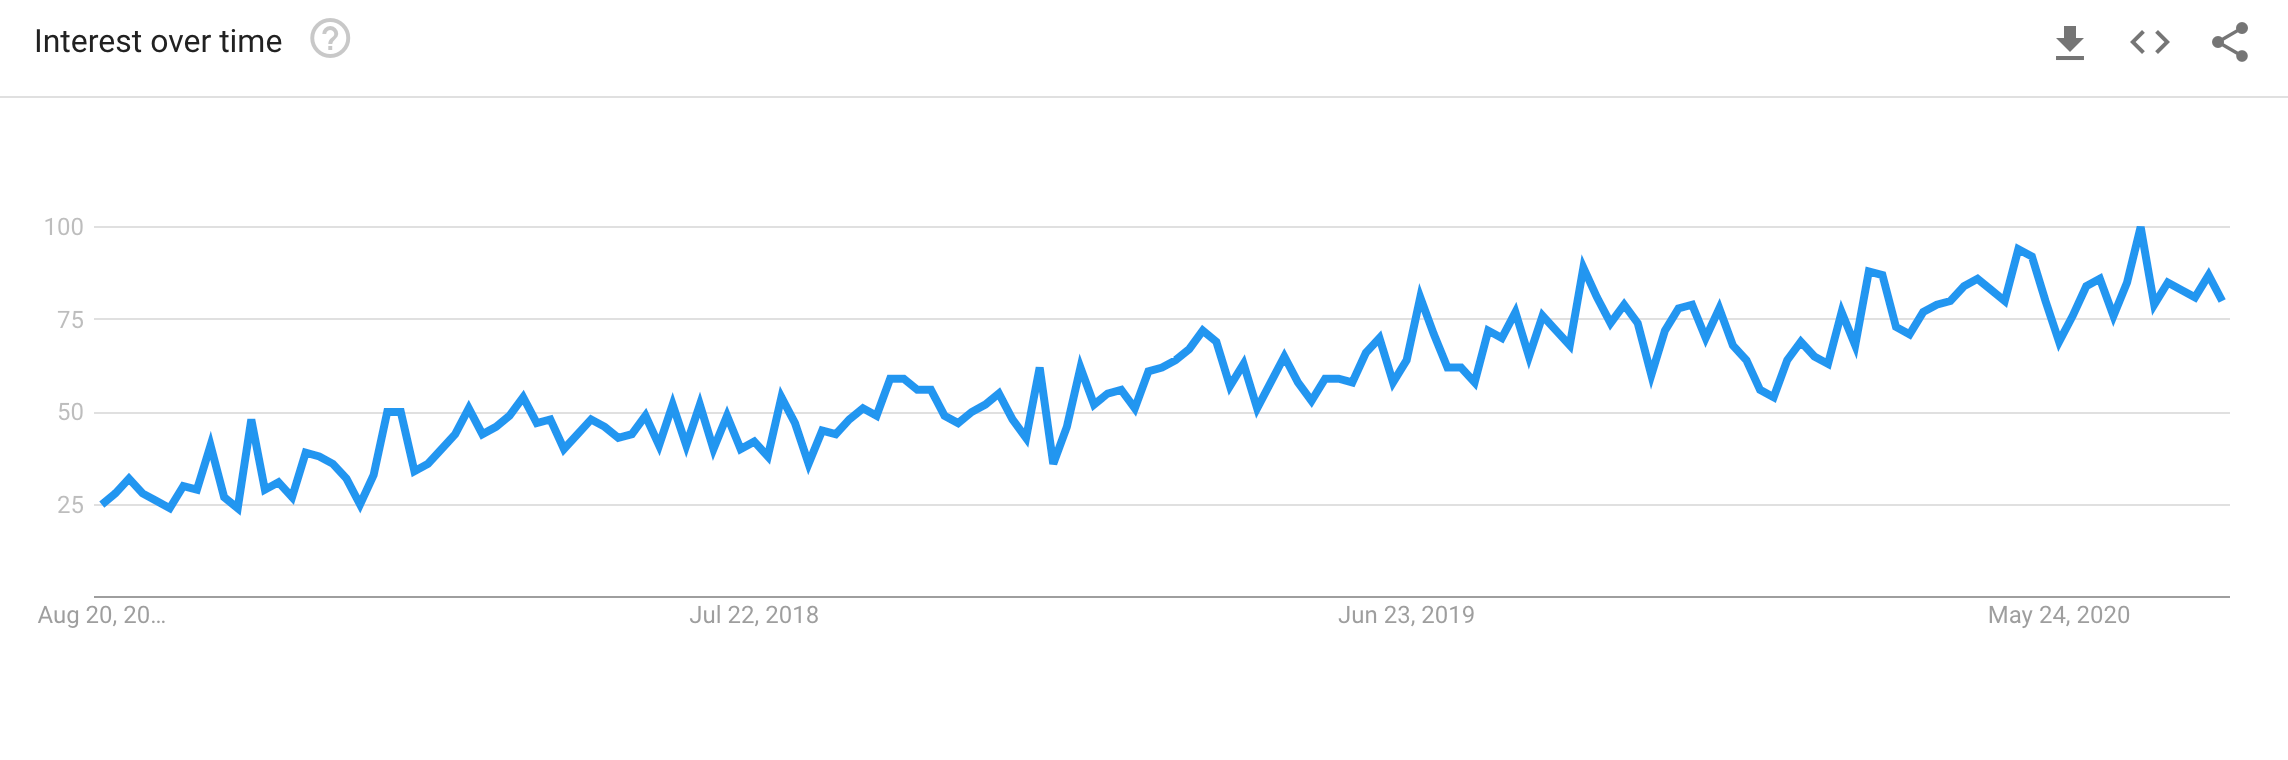 Expo's interest over time (Google Trends)